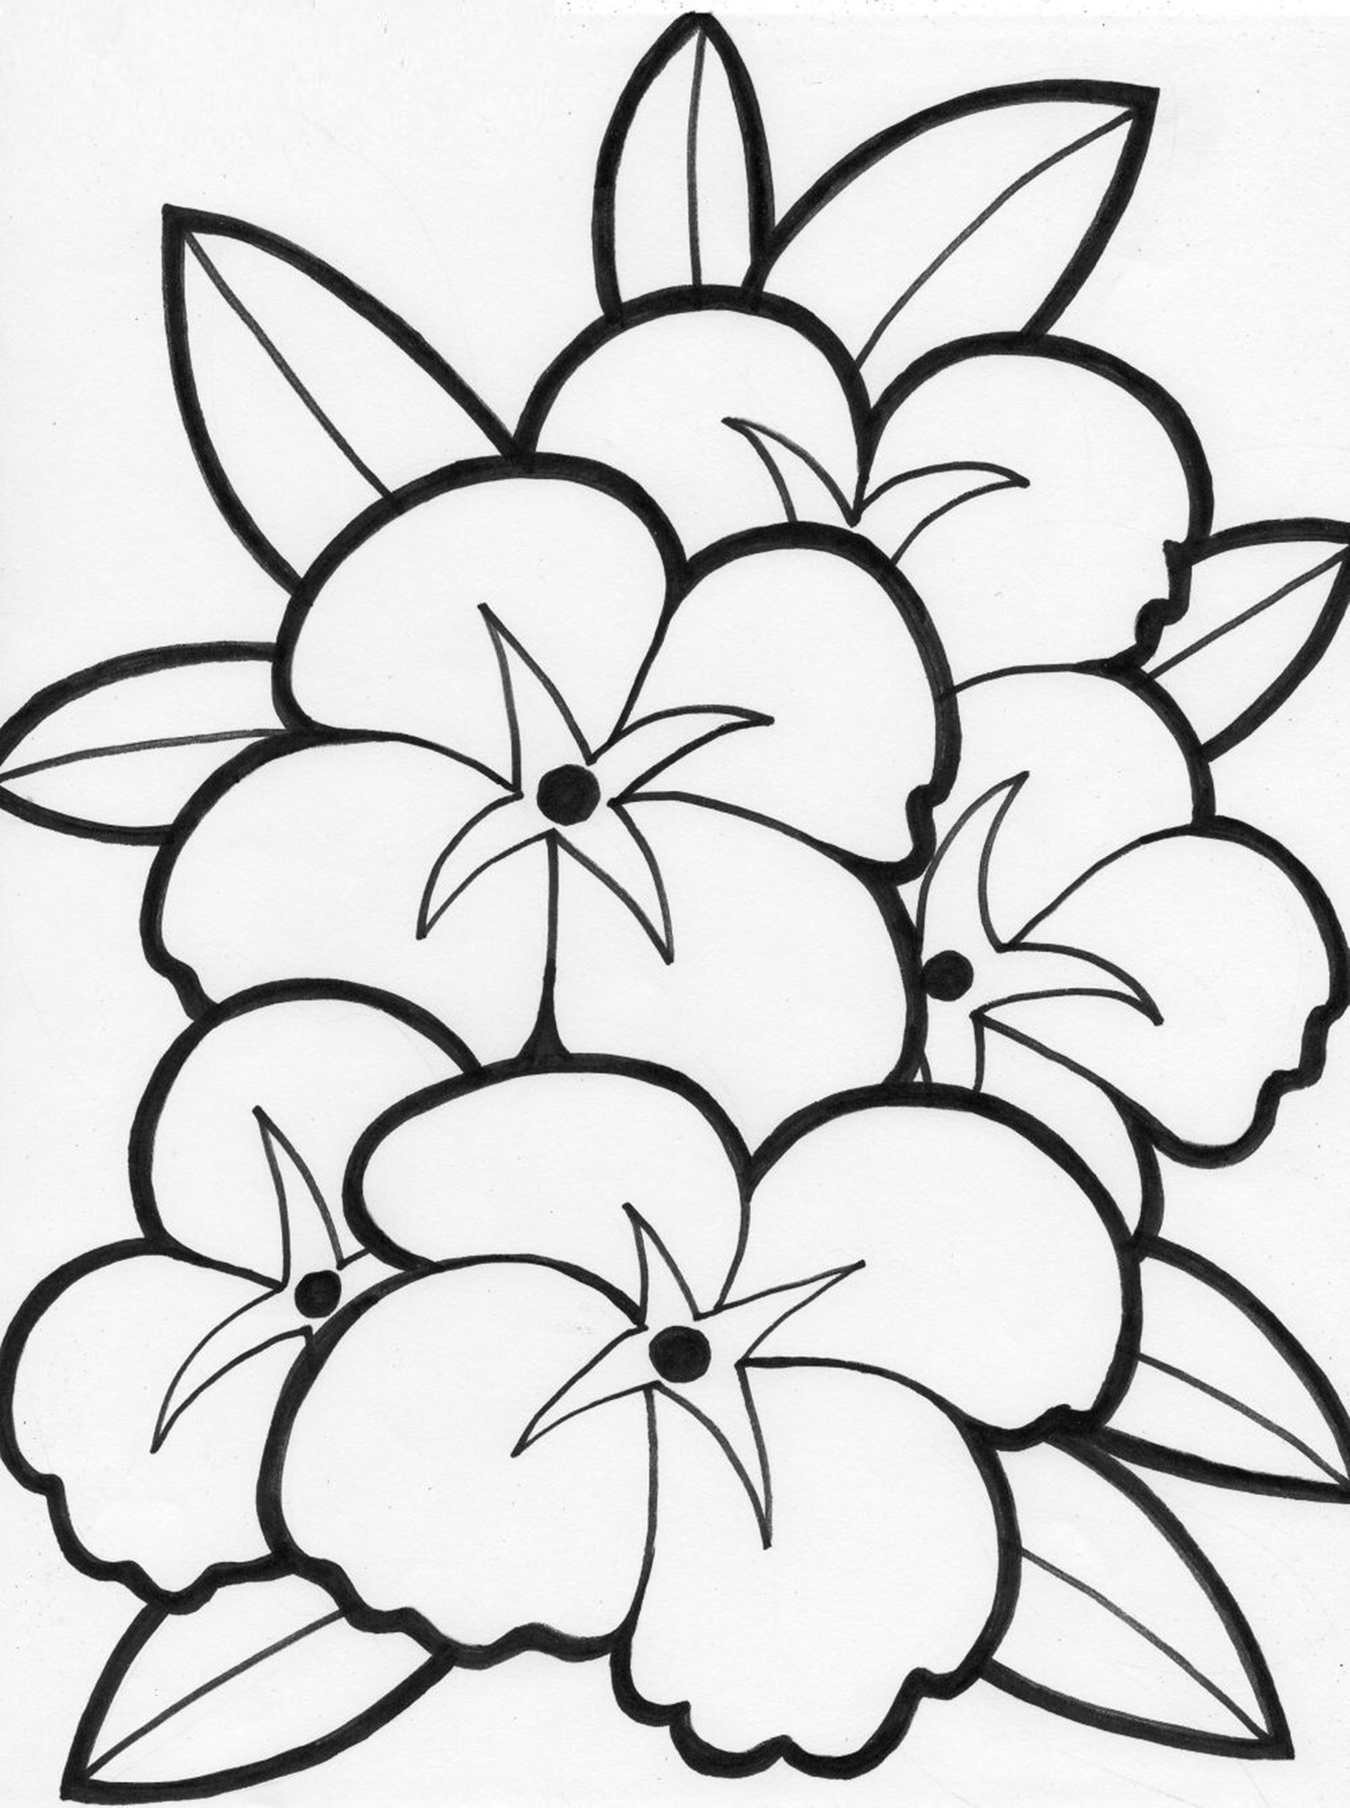 flower colouring pictures to print 2014 butterfly flowers printable coloring pages for kids to flower colouring print pictures